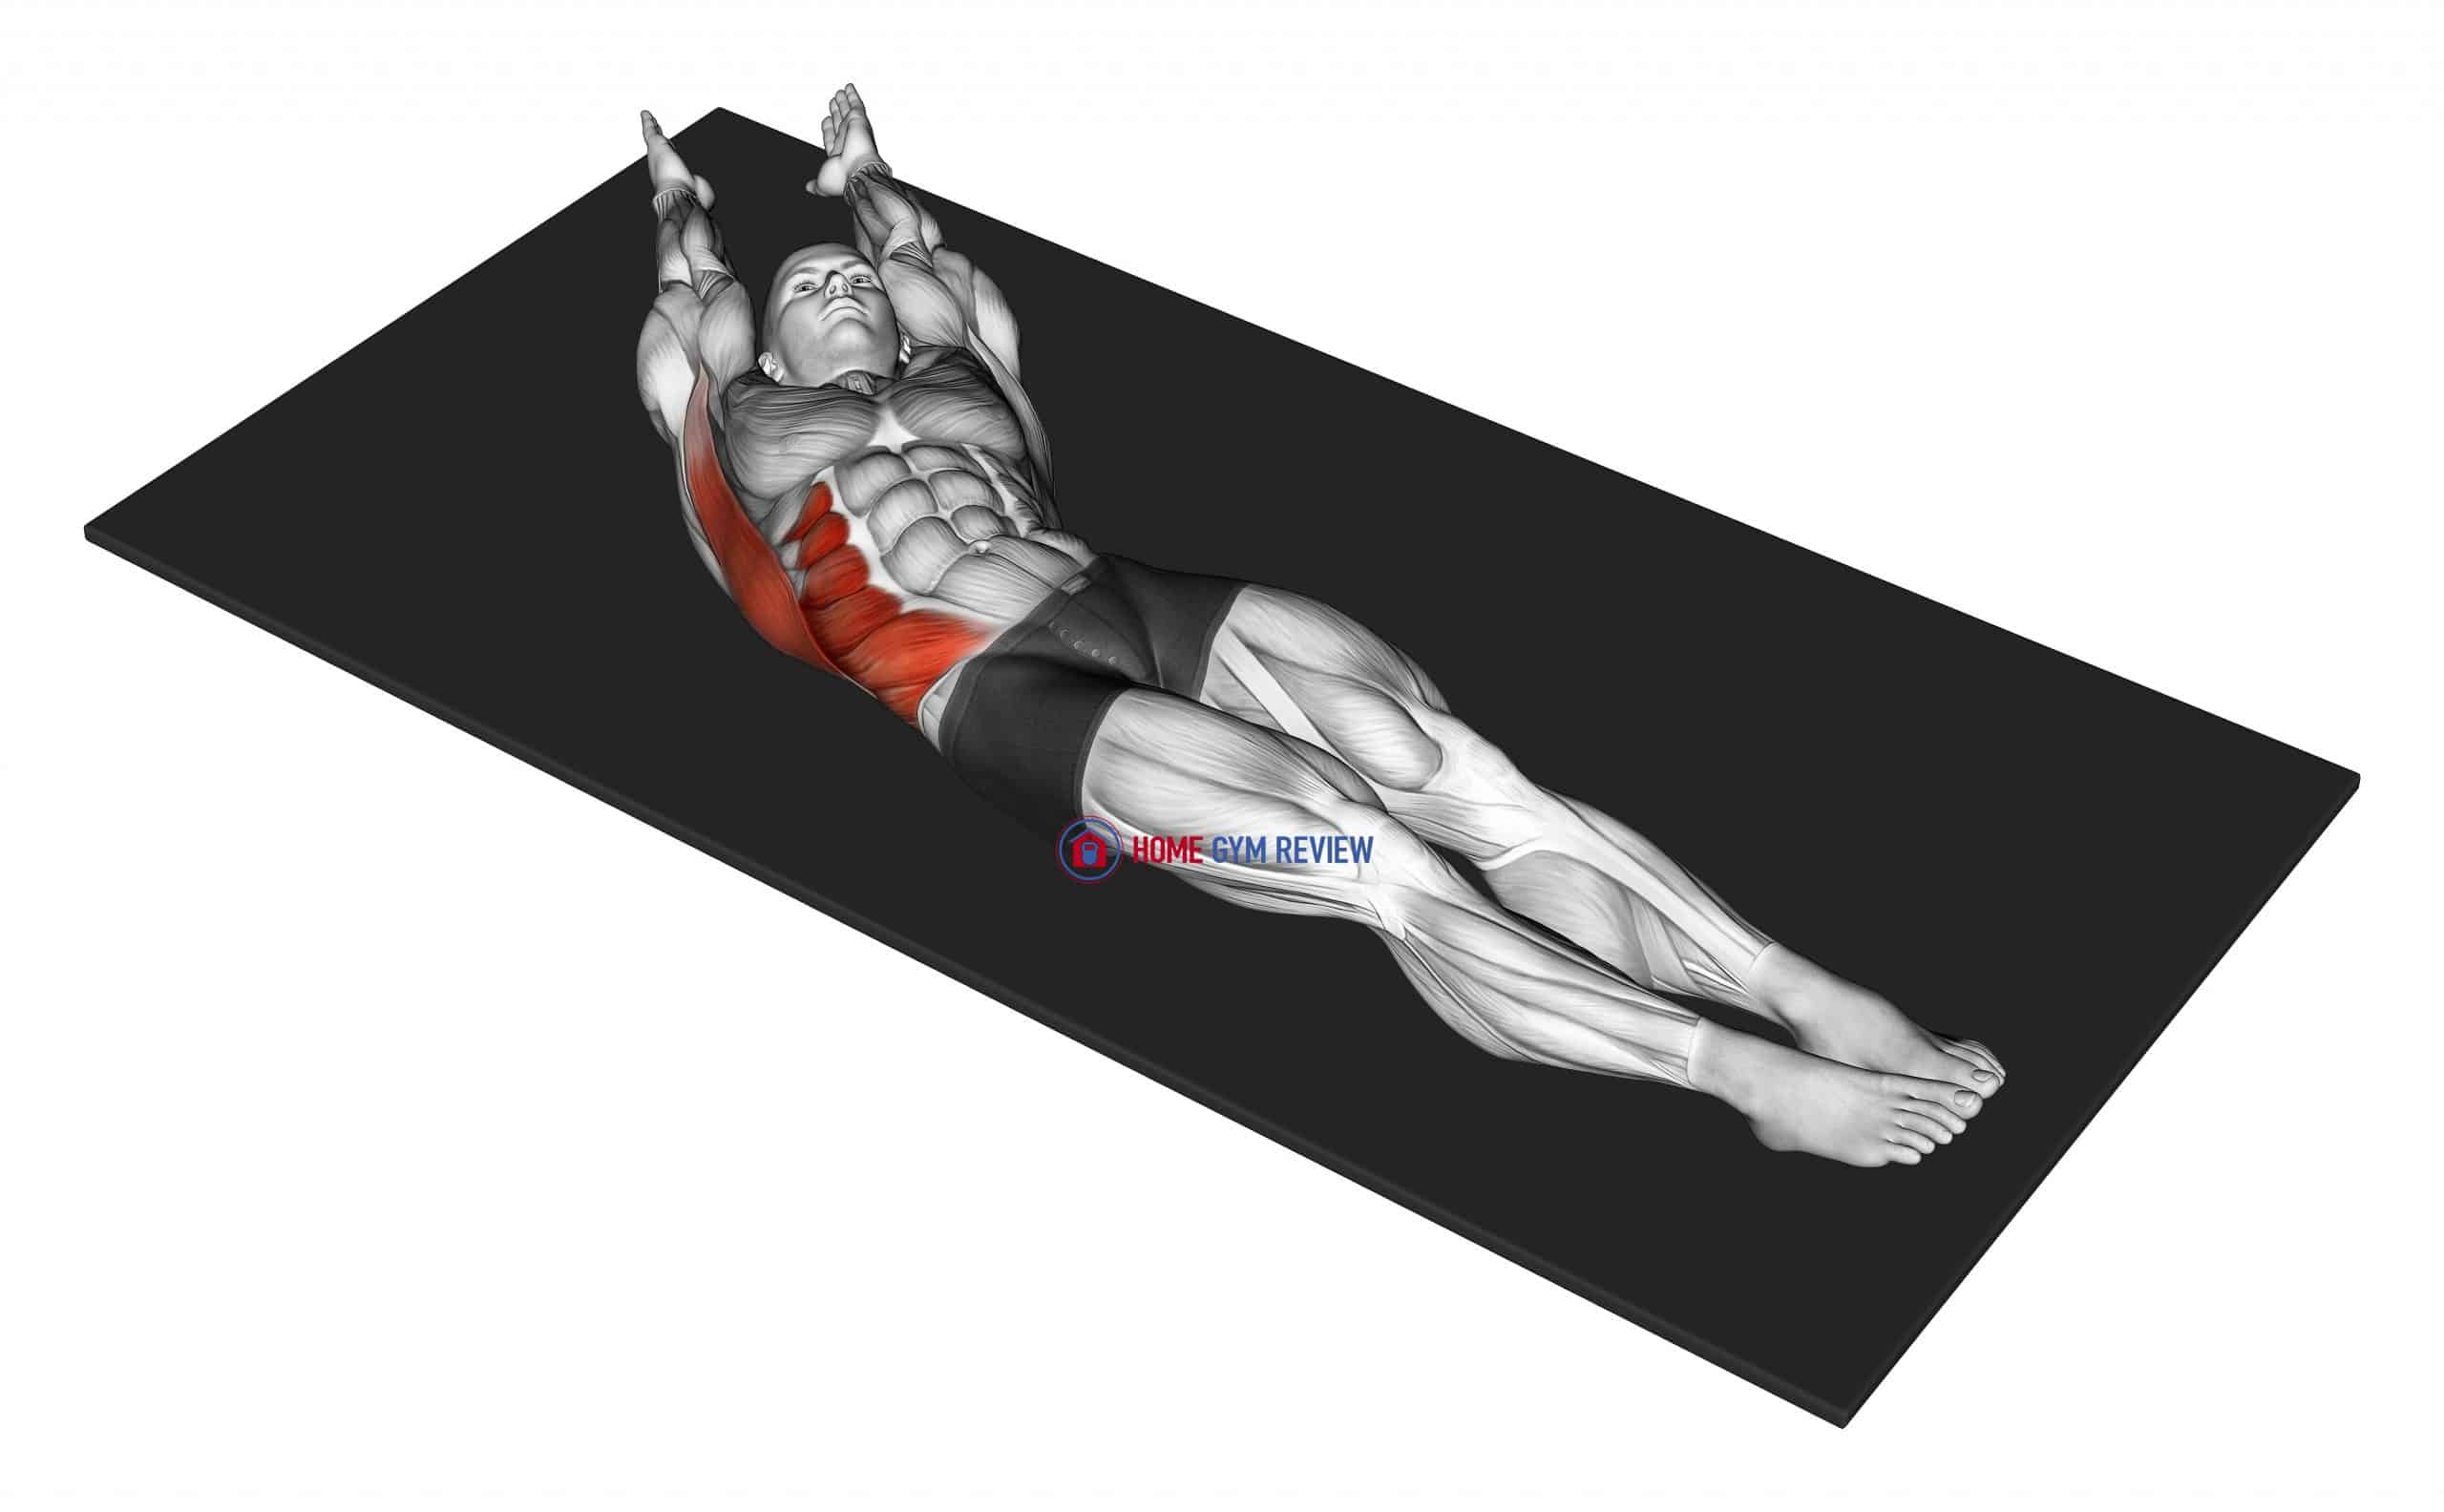 Lateral Bend Lying Down